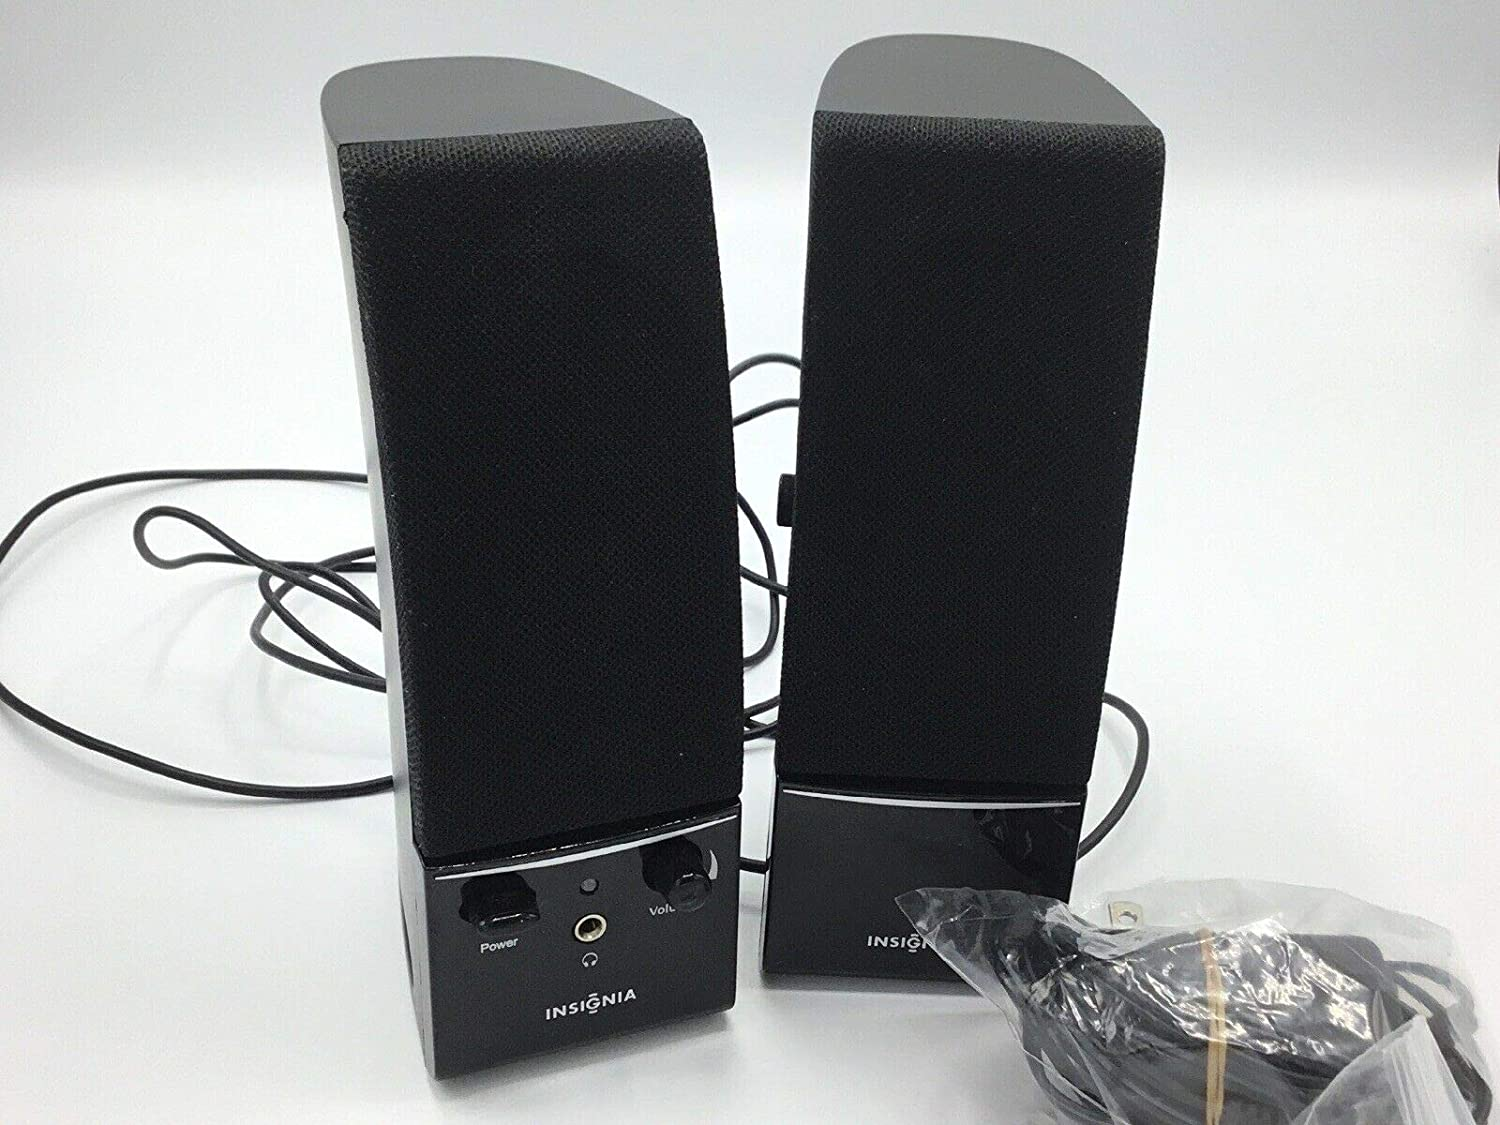 Insignia NS-PCS20 2.0 Stereo Computer Speakers